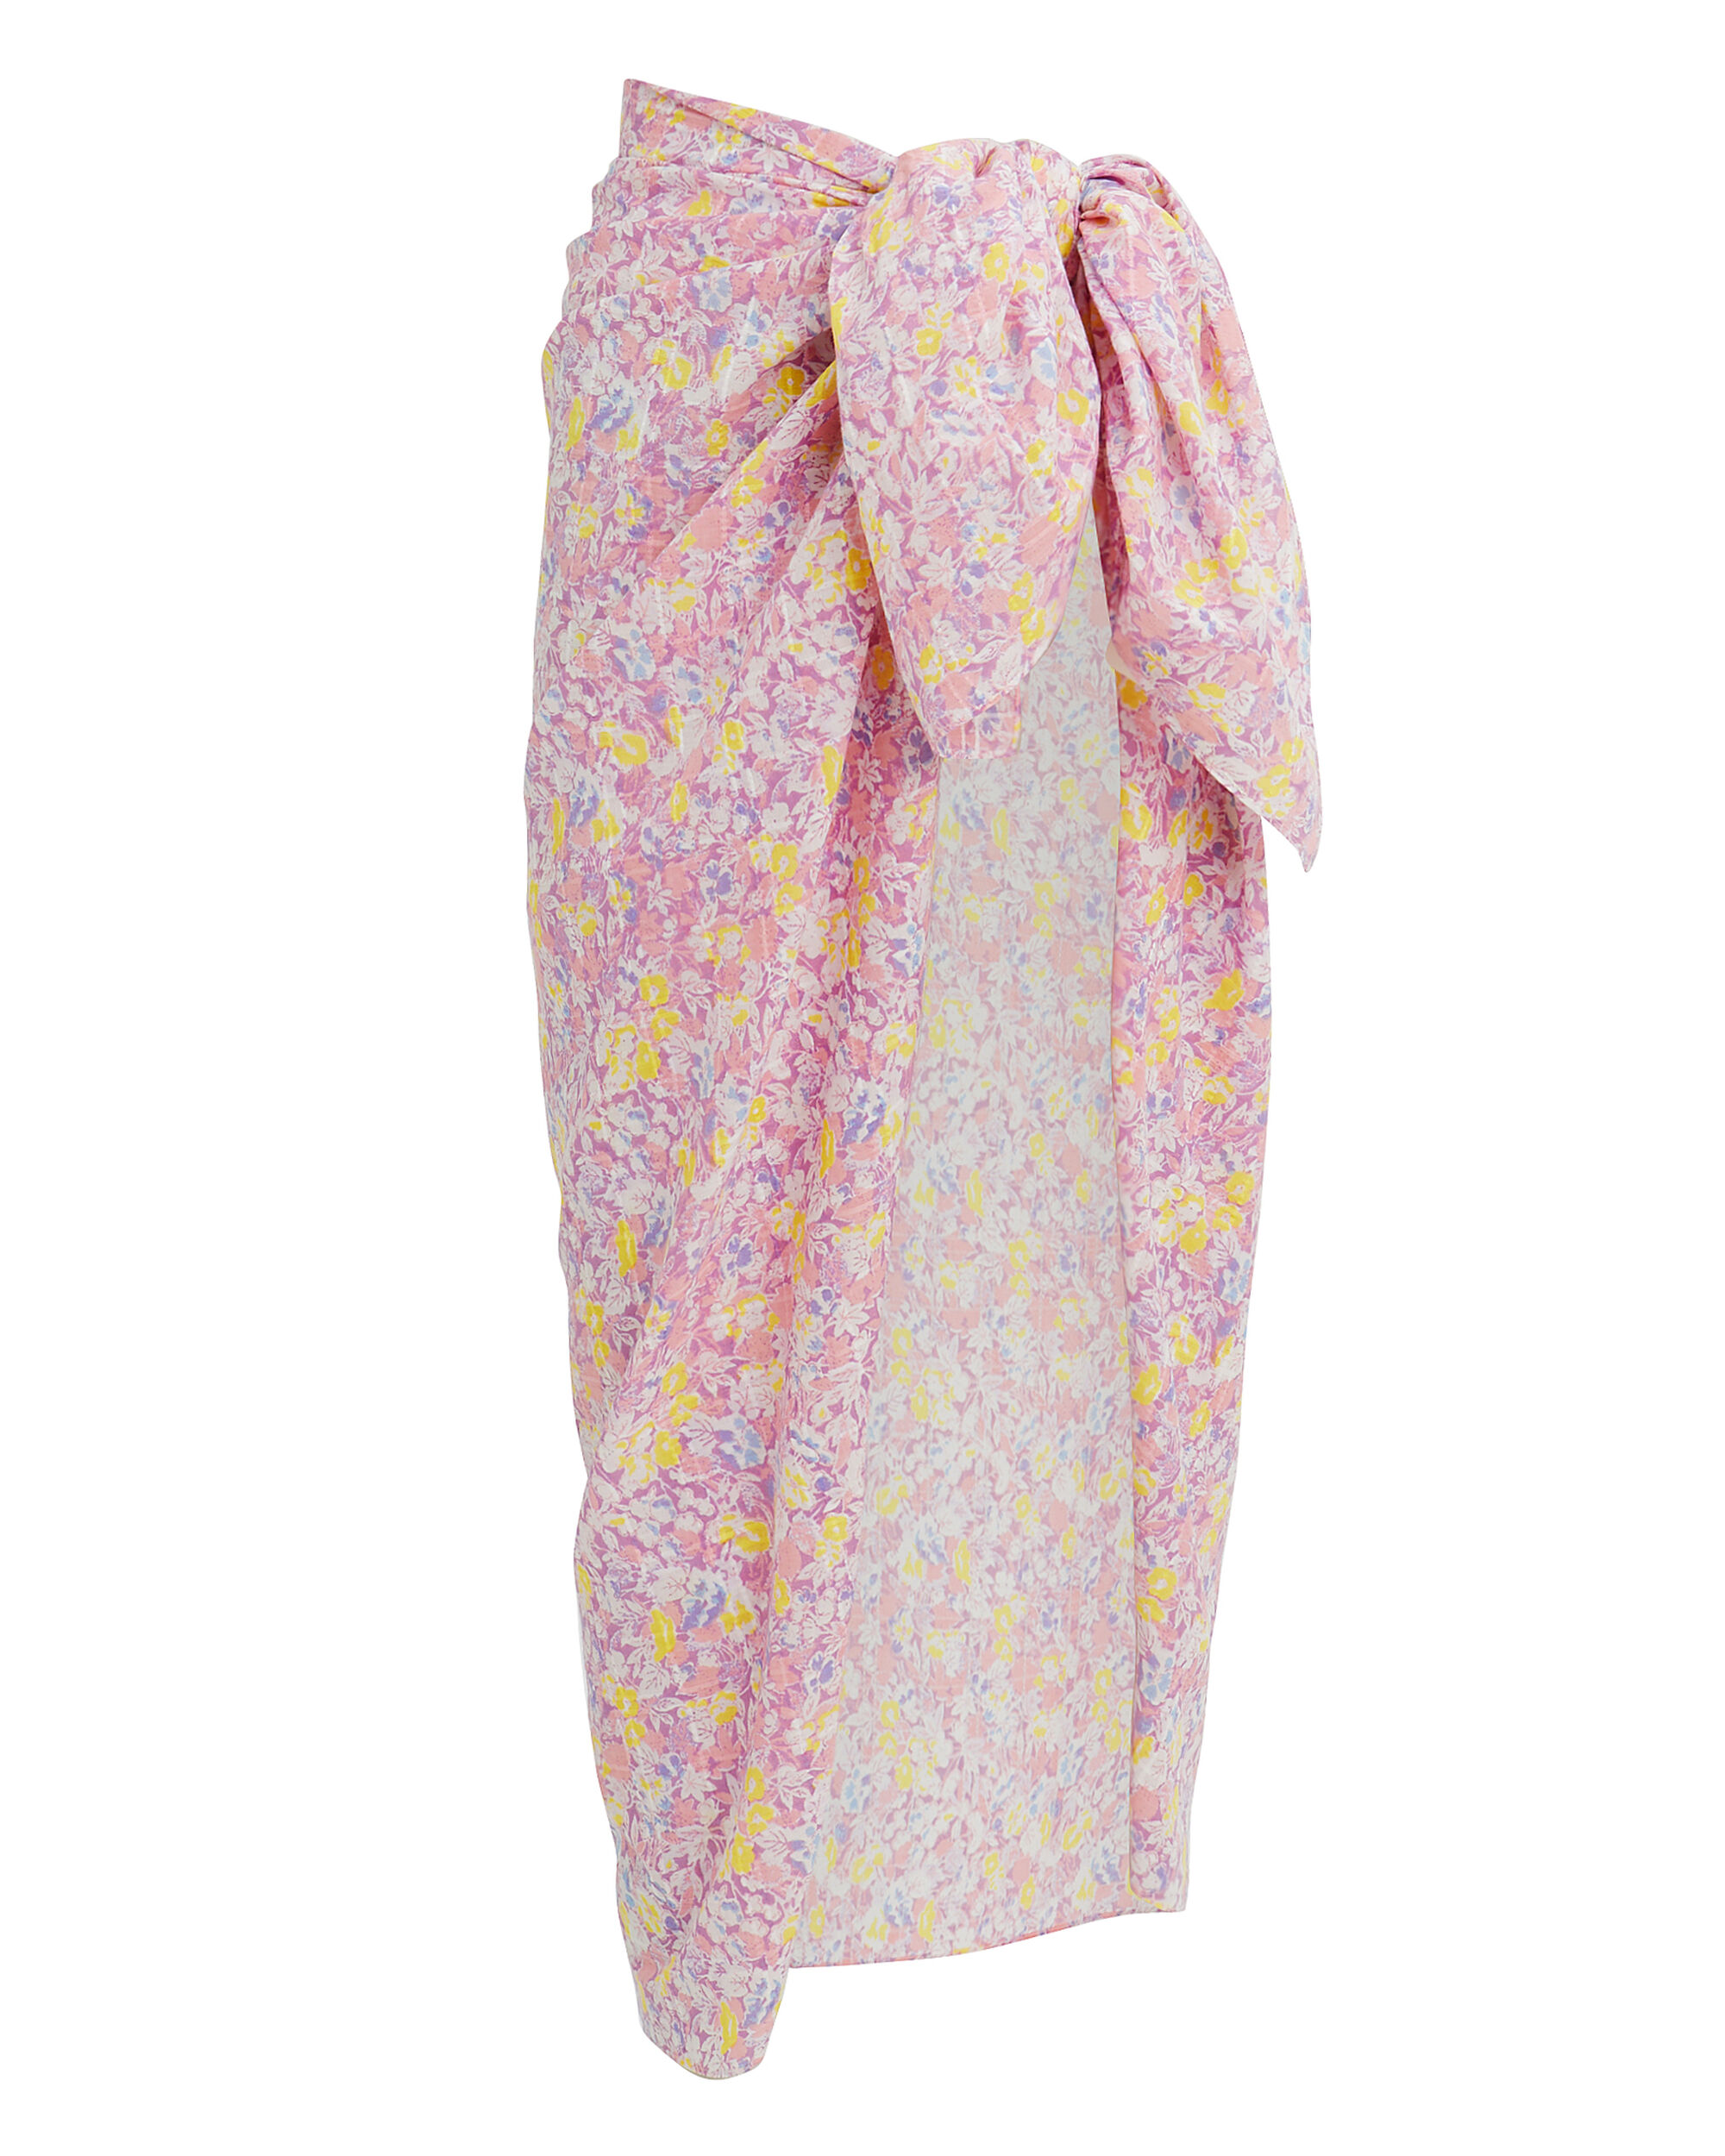 Noa Pareo Cover-Up Skirt, PURPLE/FLORAL, hi-res